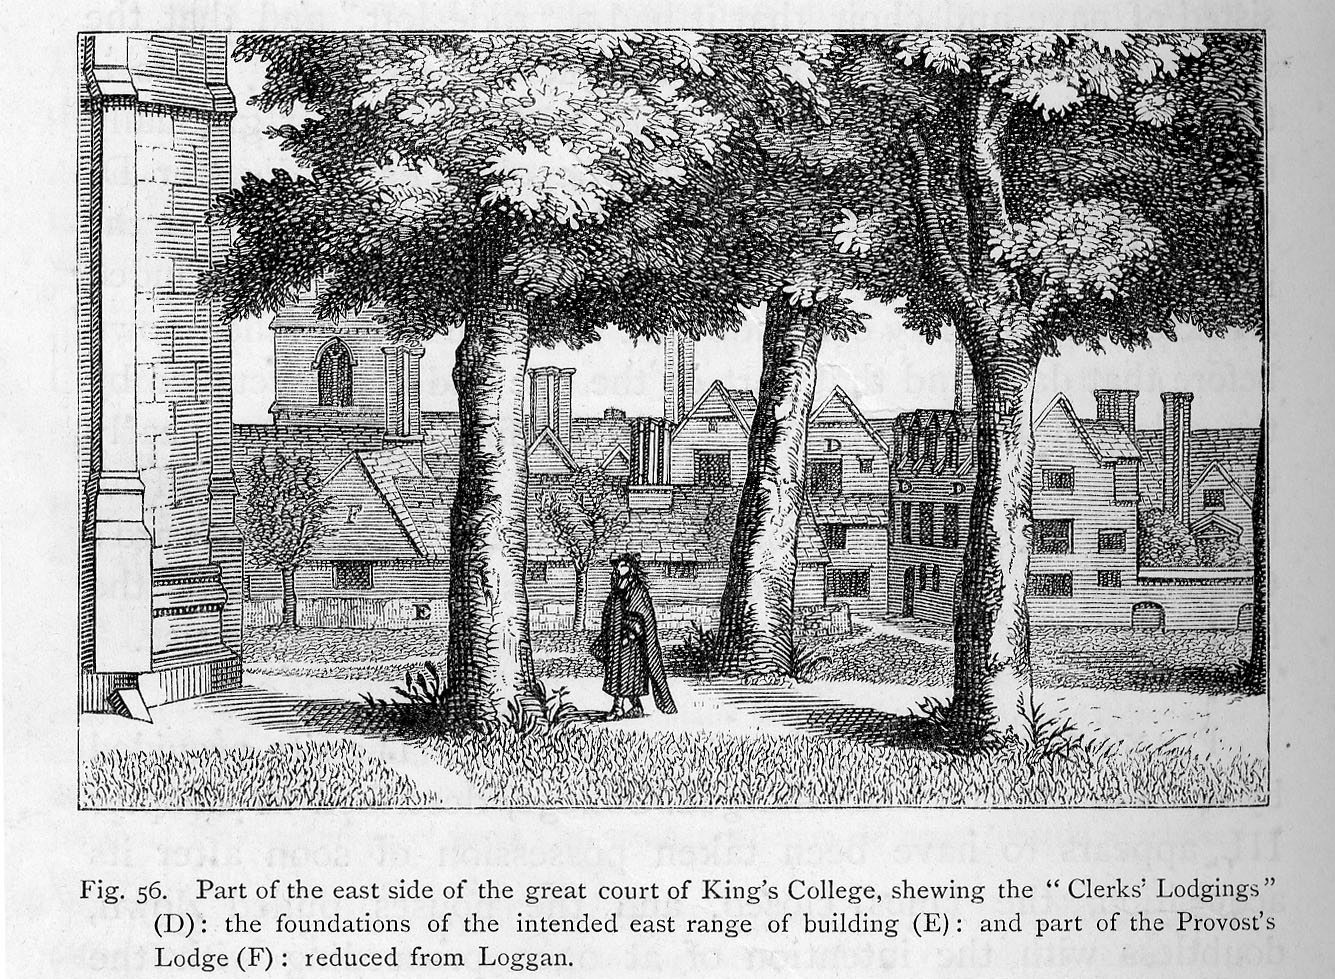 Labelled enlargement of  plate XI from Loggan's Cantabrigia Illustrata, showing the former Provost's Lodge and 'Clerks' Lodgings' (Willis and Clark, vol. 1, p. 552, fig. 56).